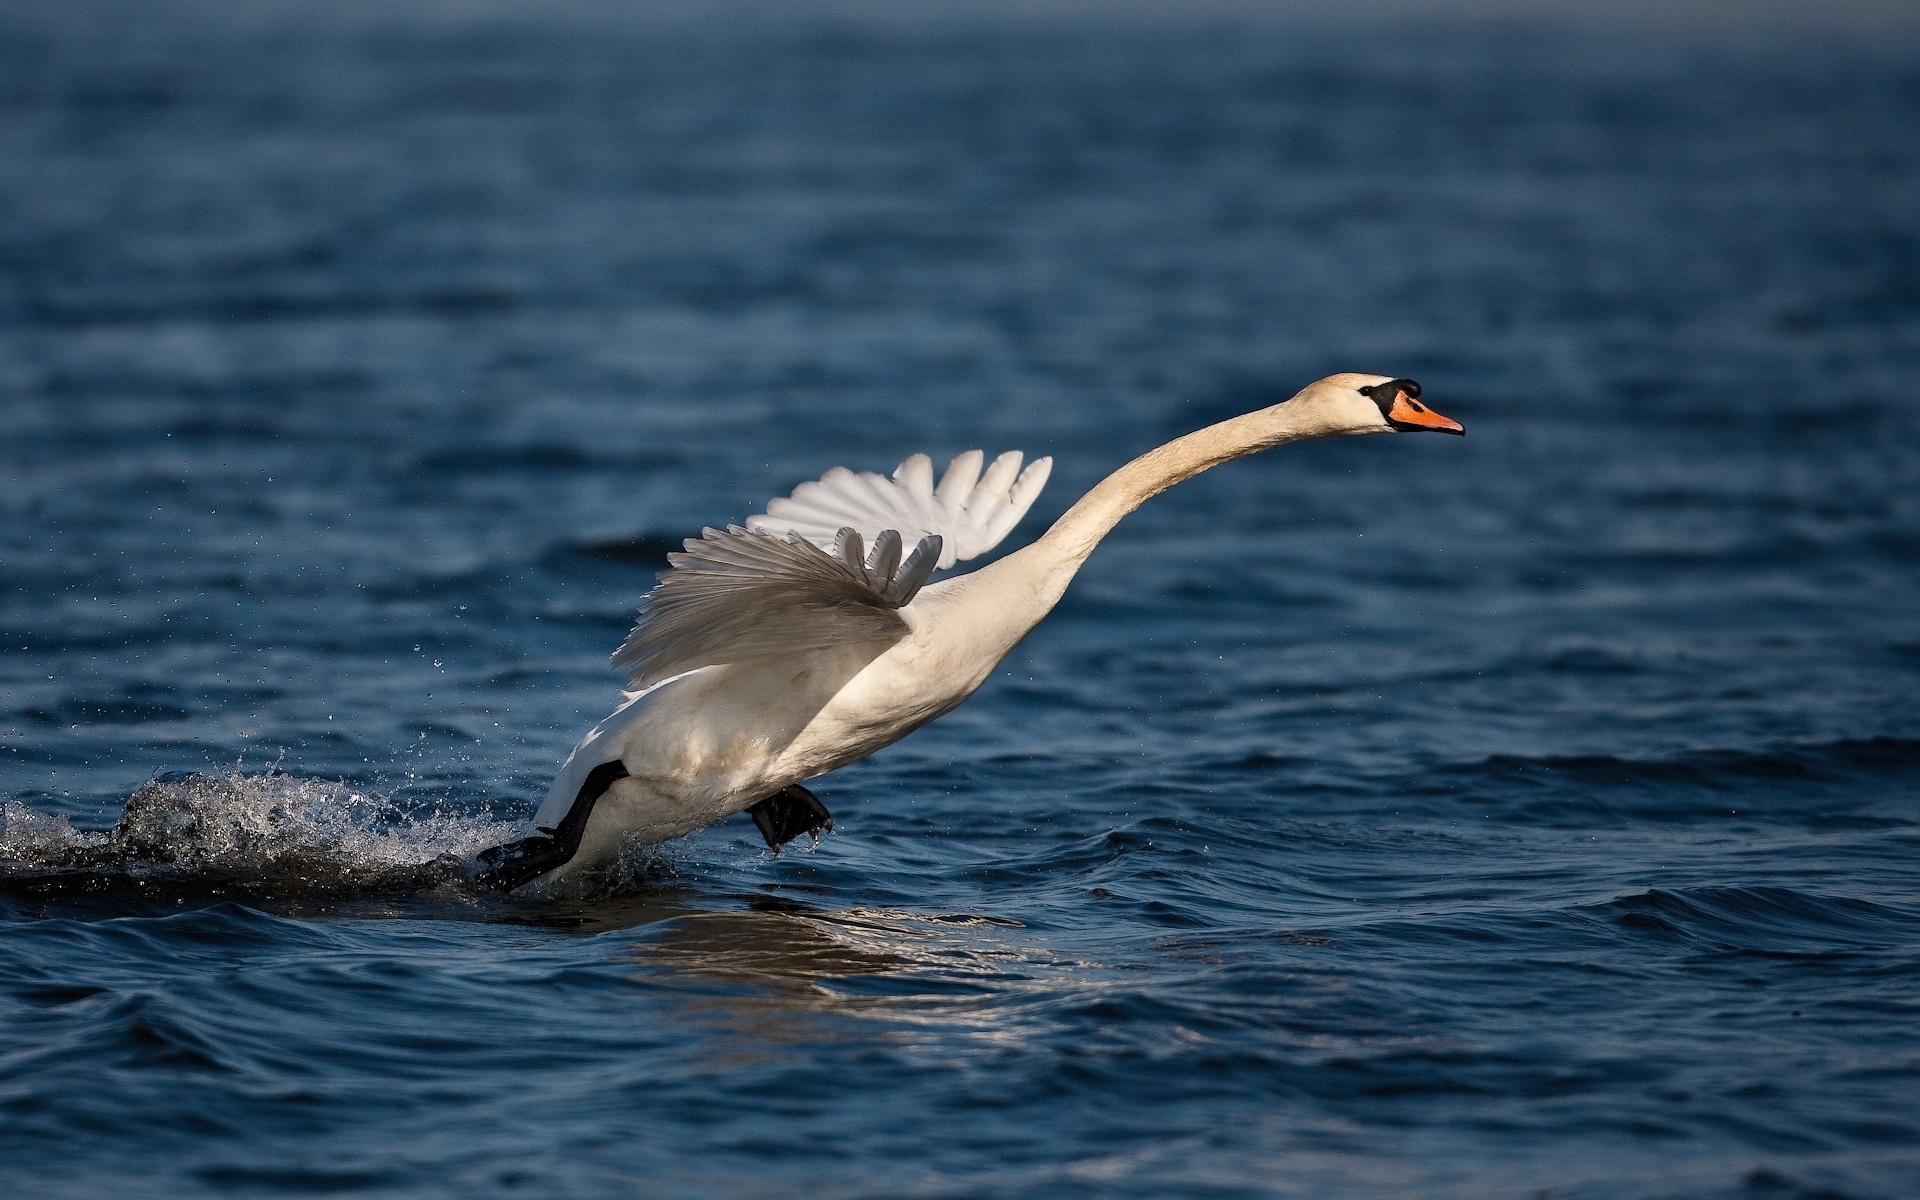 29722 download wallpaper Animals, Birds, Swans screensavers and pictures for free